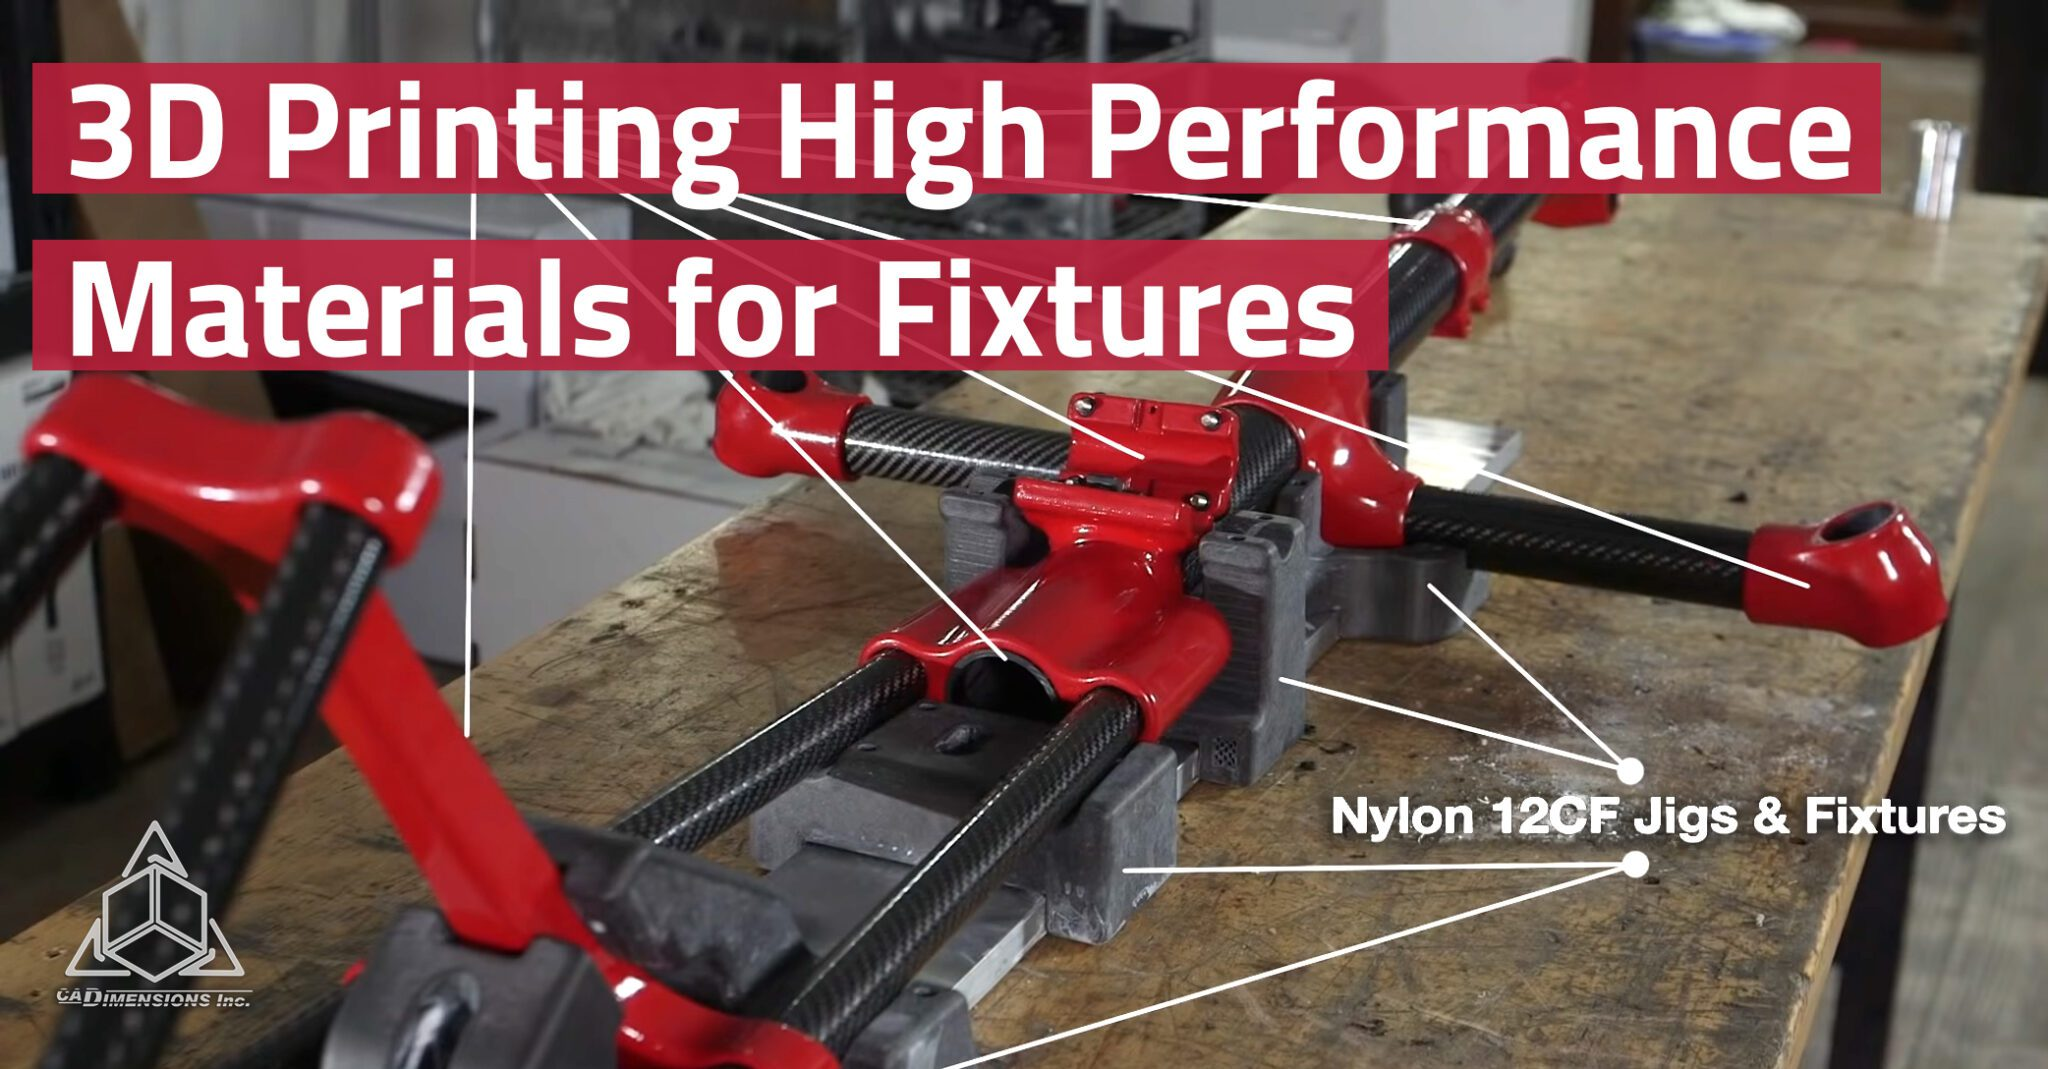 3D Printing High Performance Materials for Fixtures CADimensions Stratasys